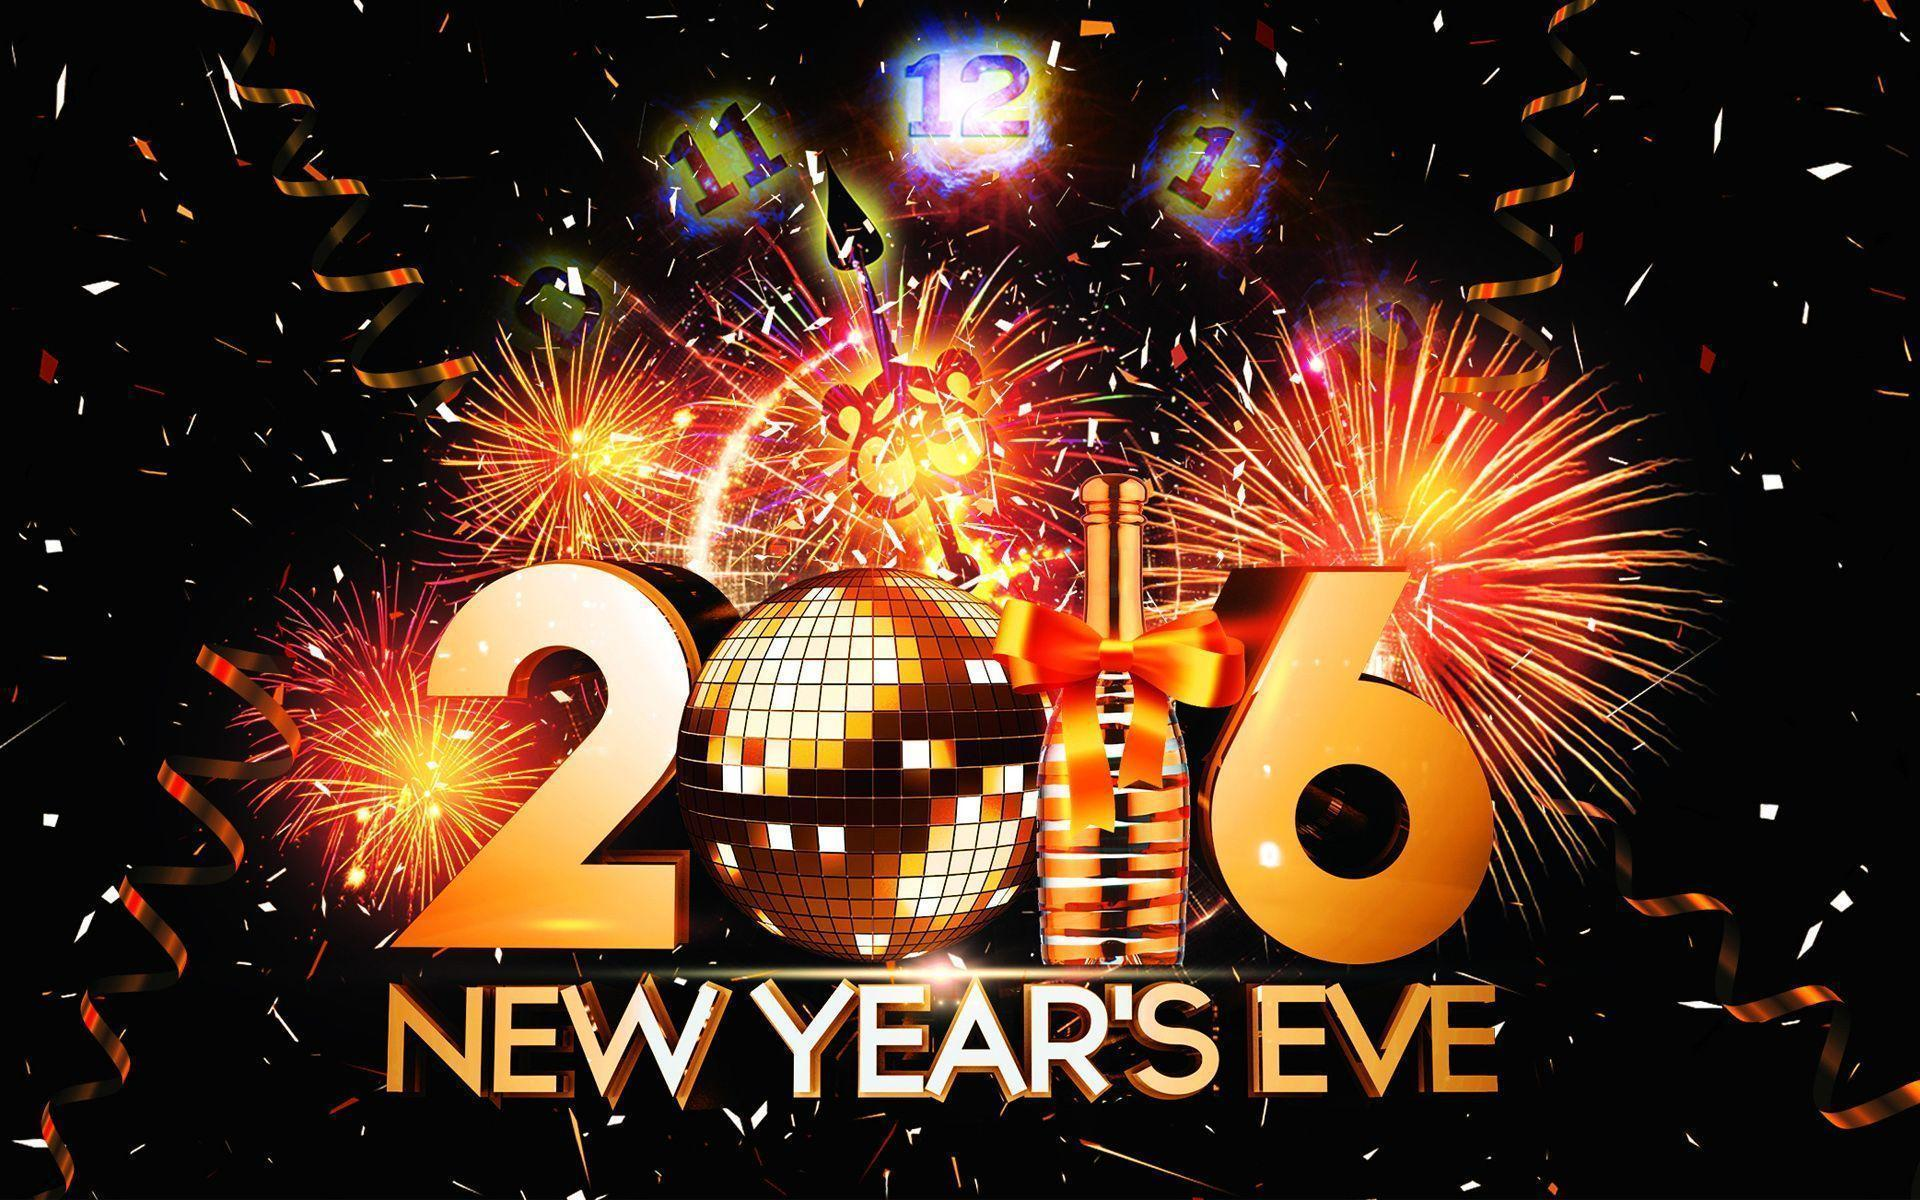 New Years Eve 2016 Wallpapers Free